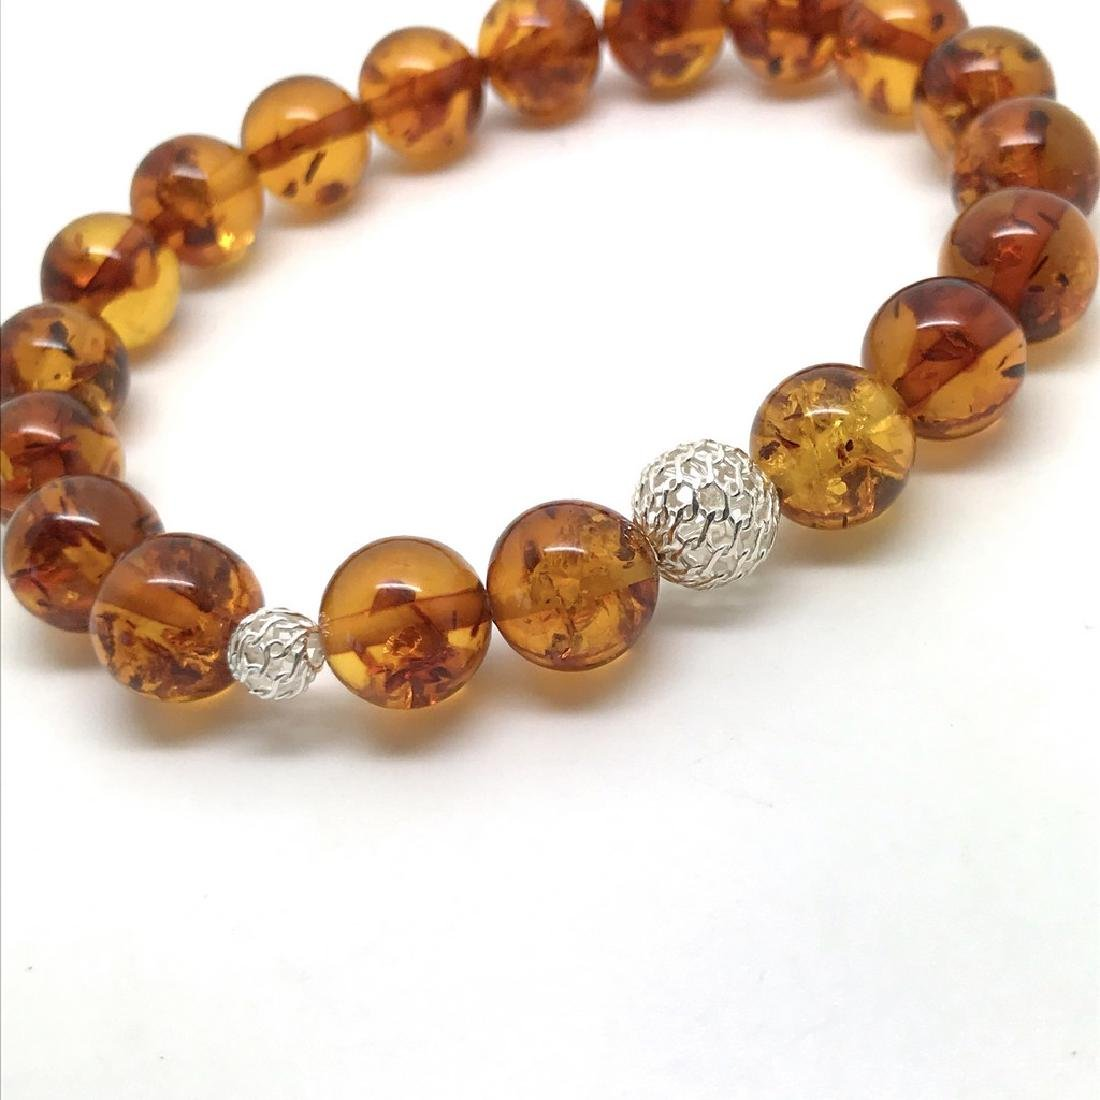 Baltic amber bracelet with sterling silver filigree - 6